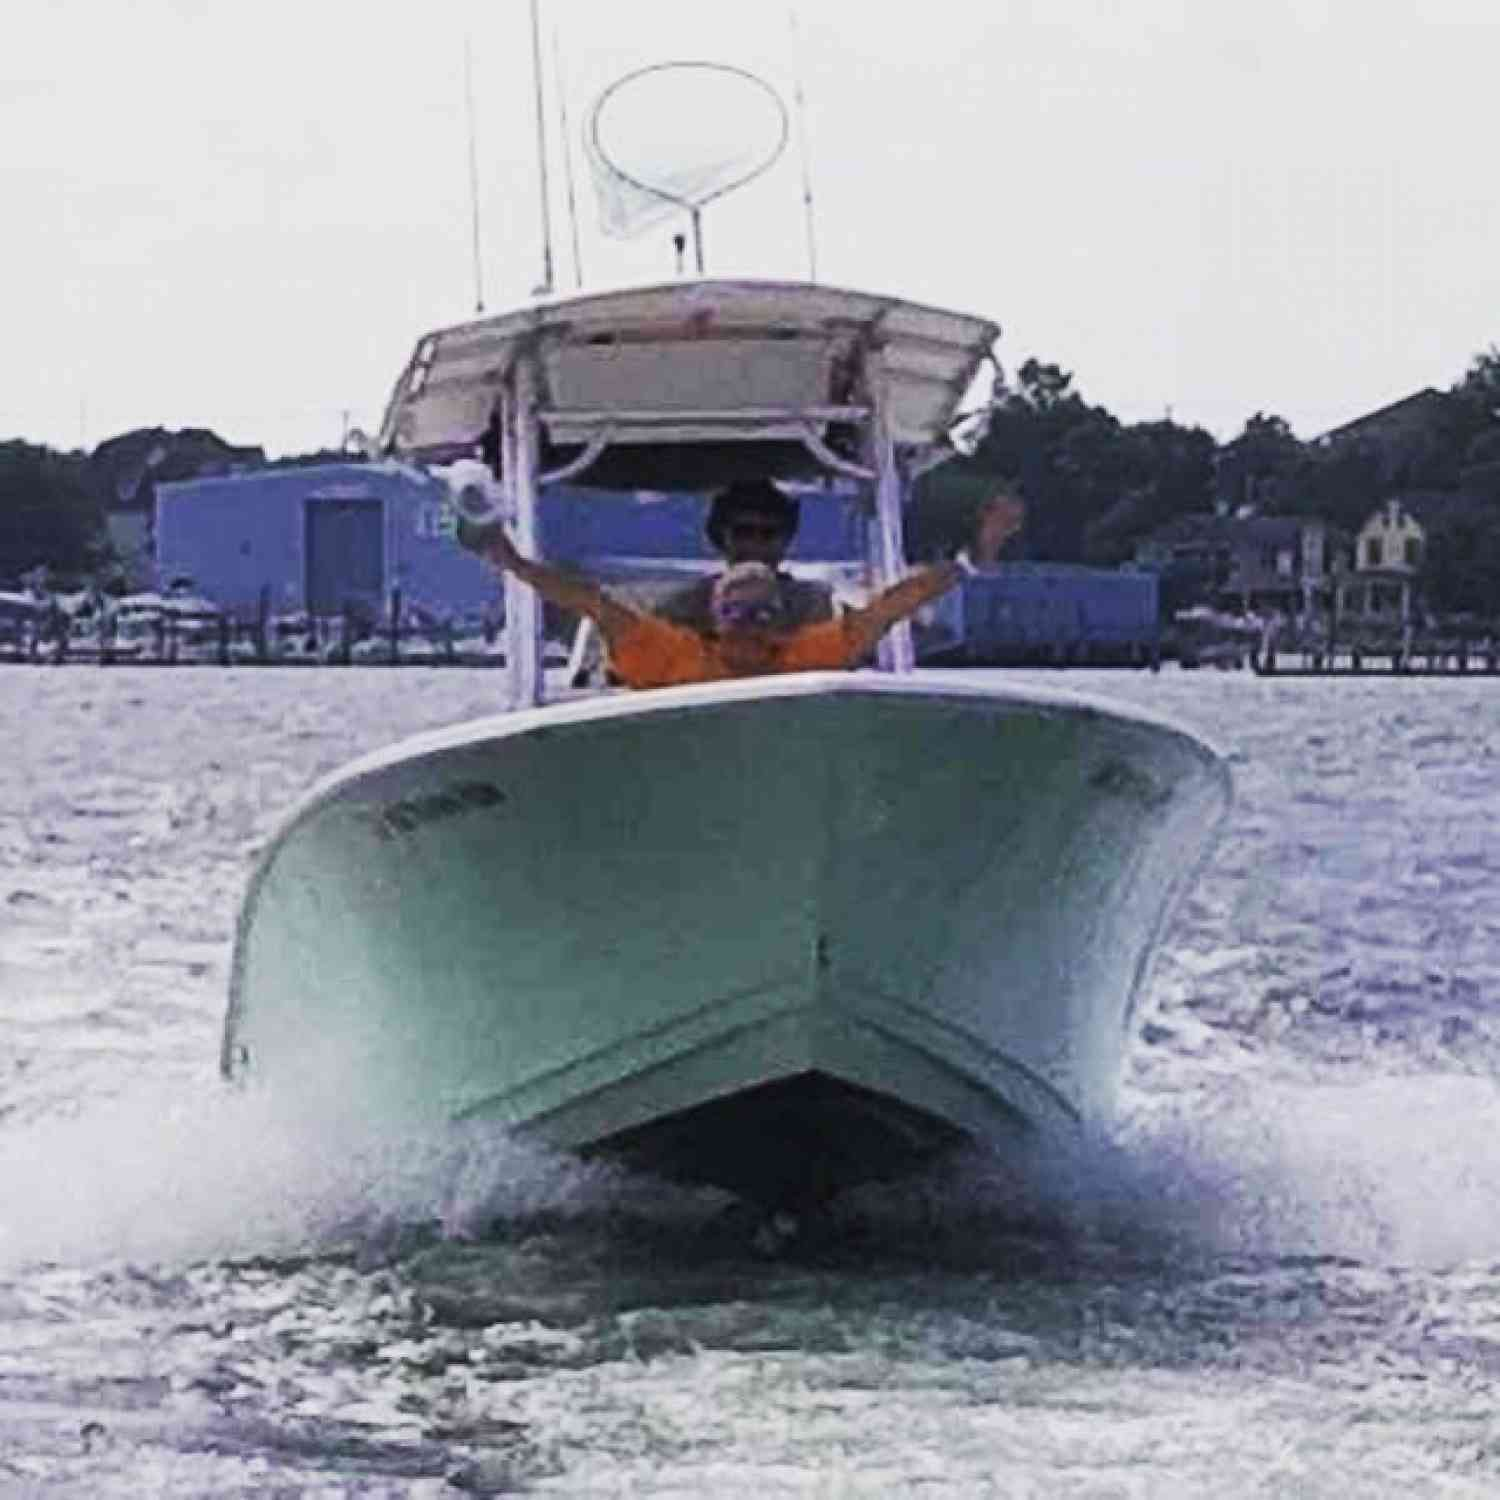 Title: Cruising! - On board their Sportsman Open 212 Center Console - Location: Ocean City NJ. Participating in the Photo Contest #SportsmanMay2020